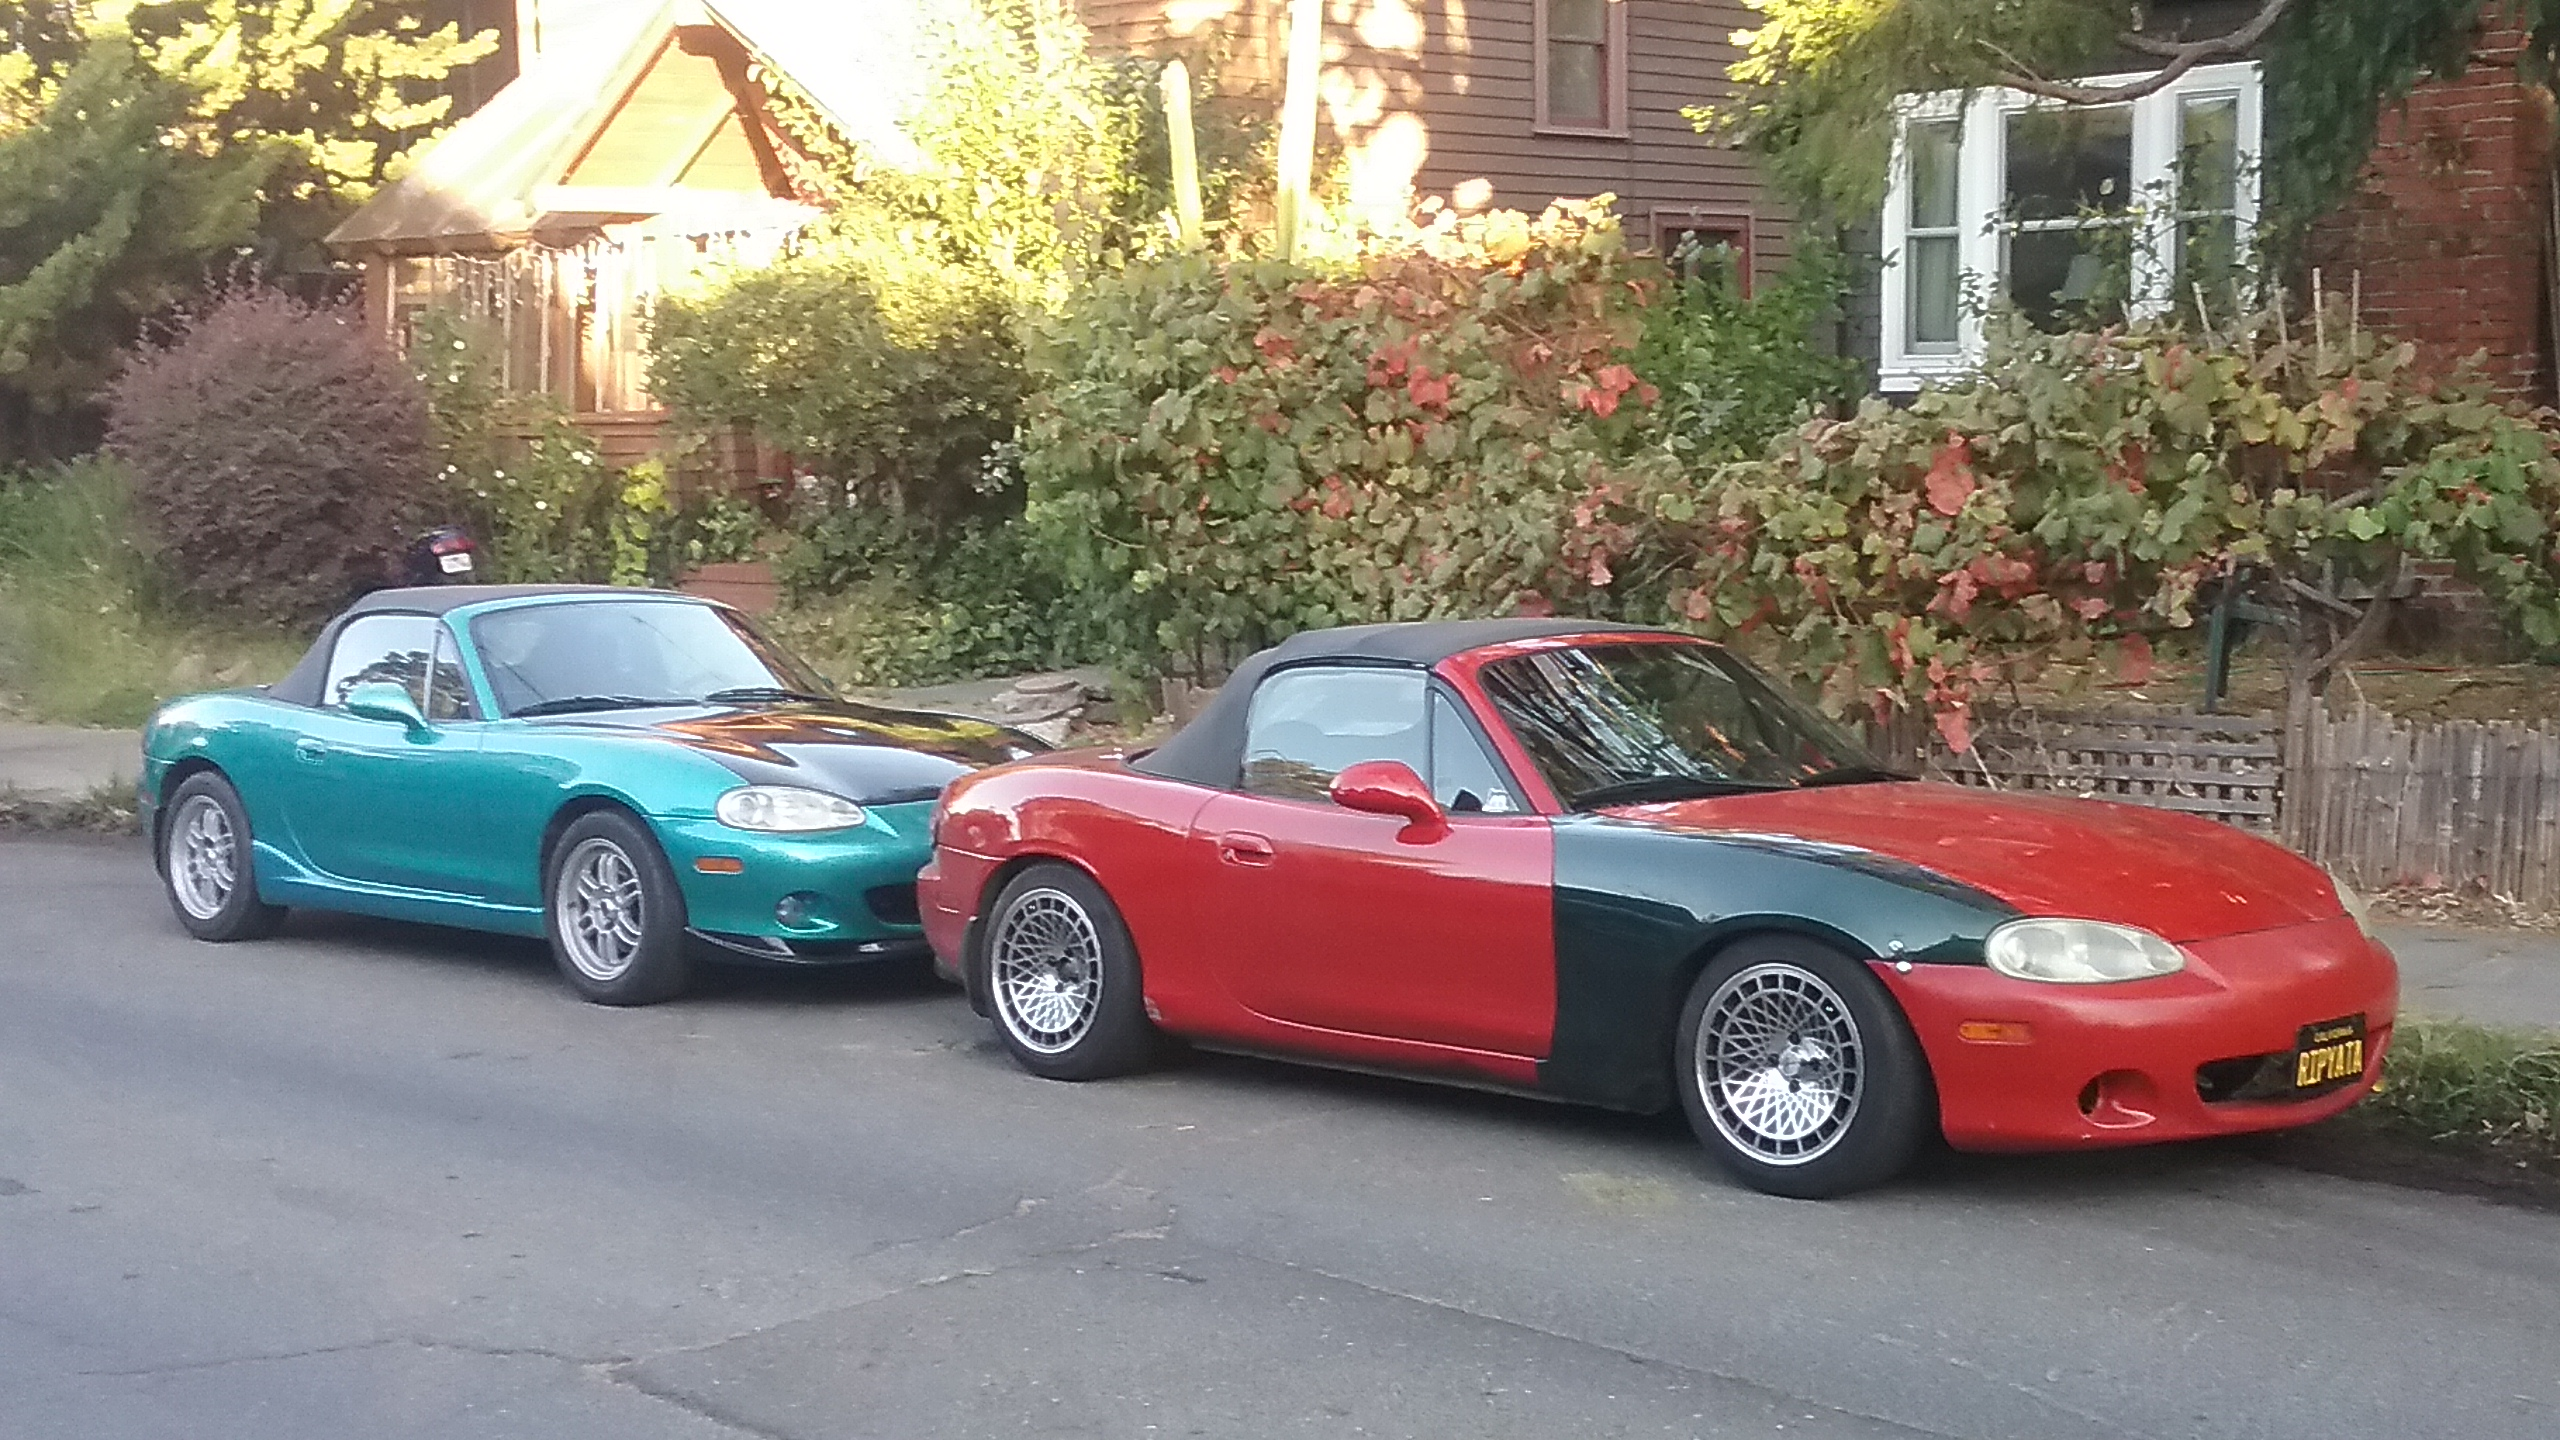 one blue, one red car parked in a row